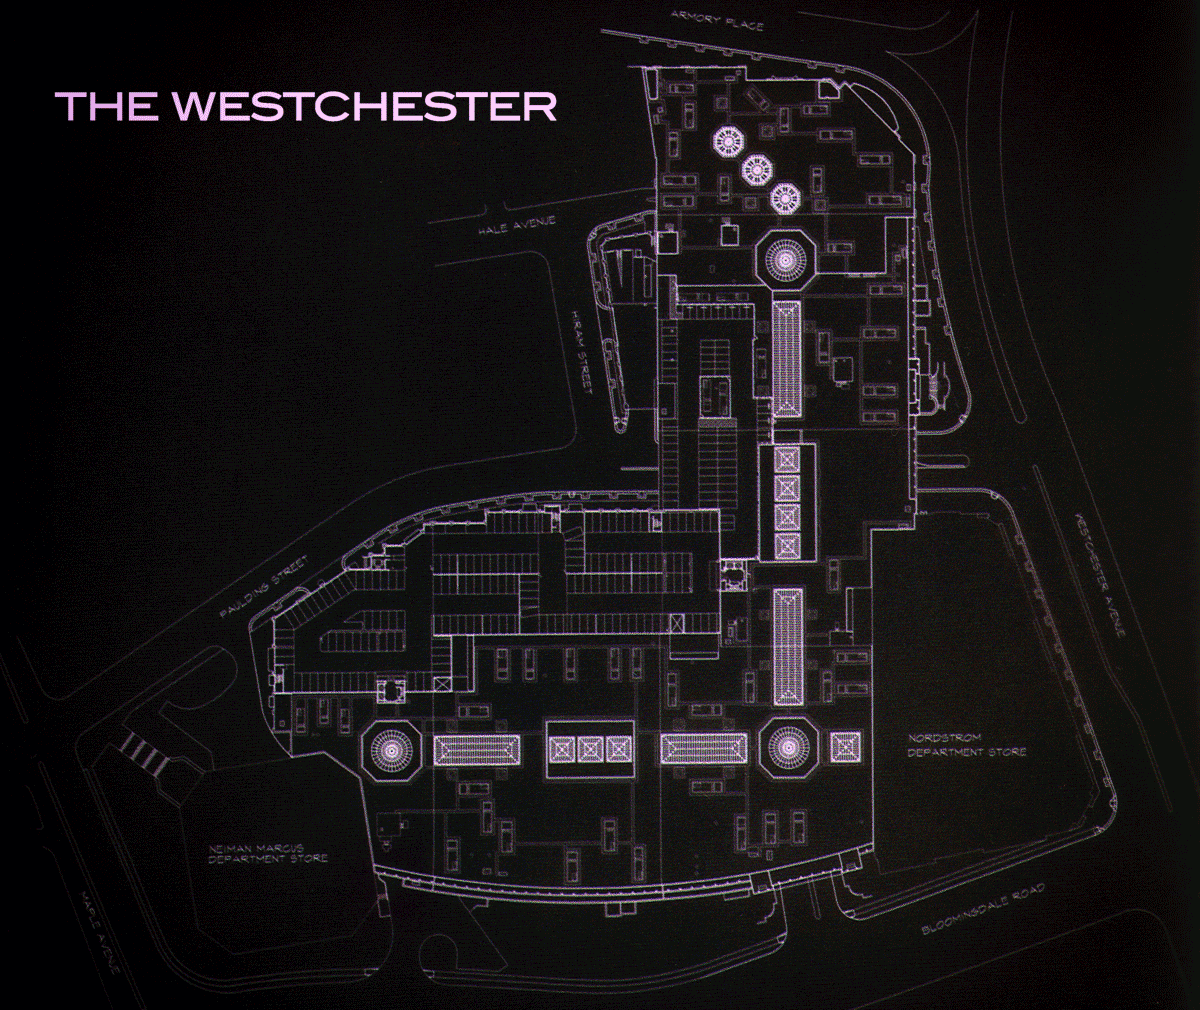 The Westchester Mall Layout